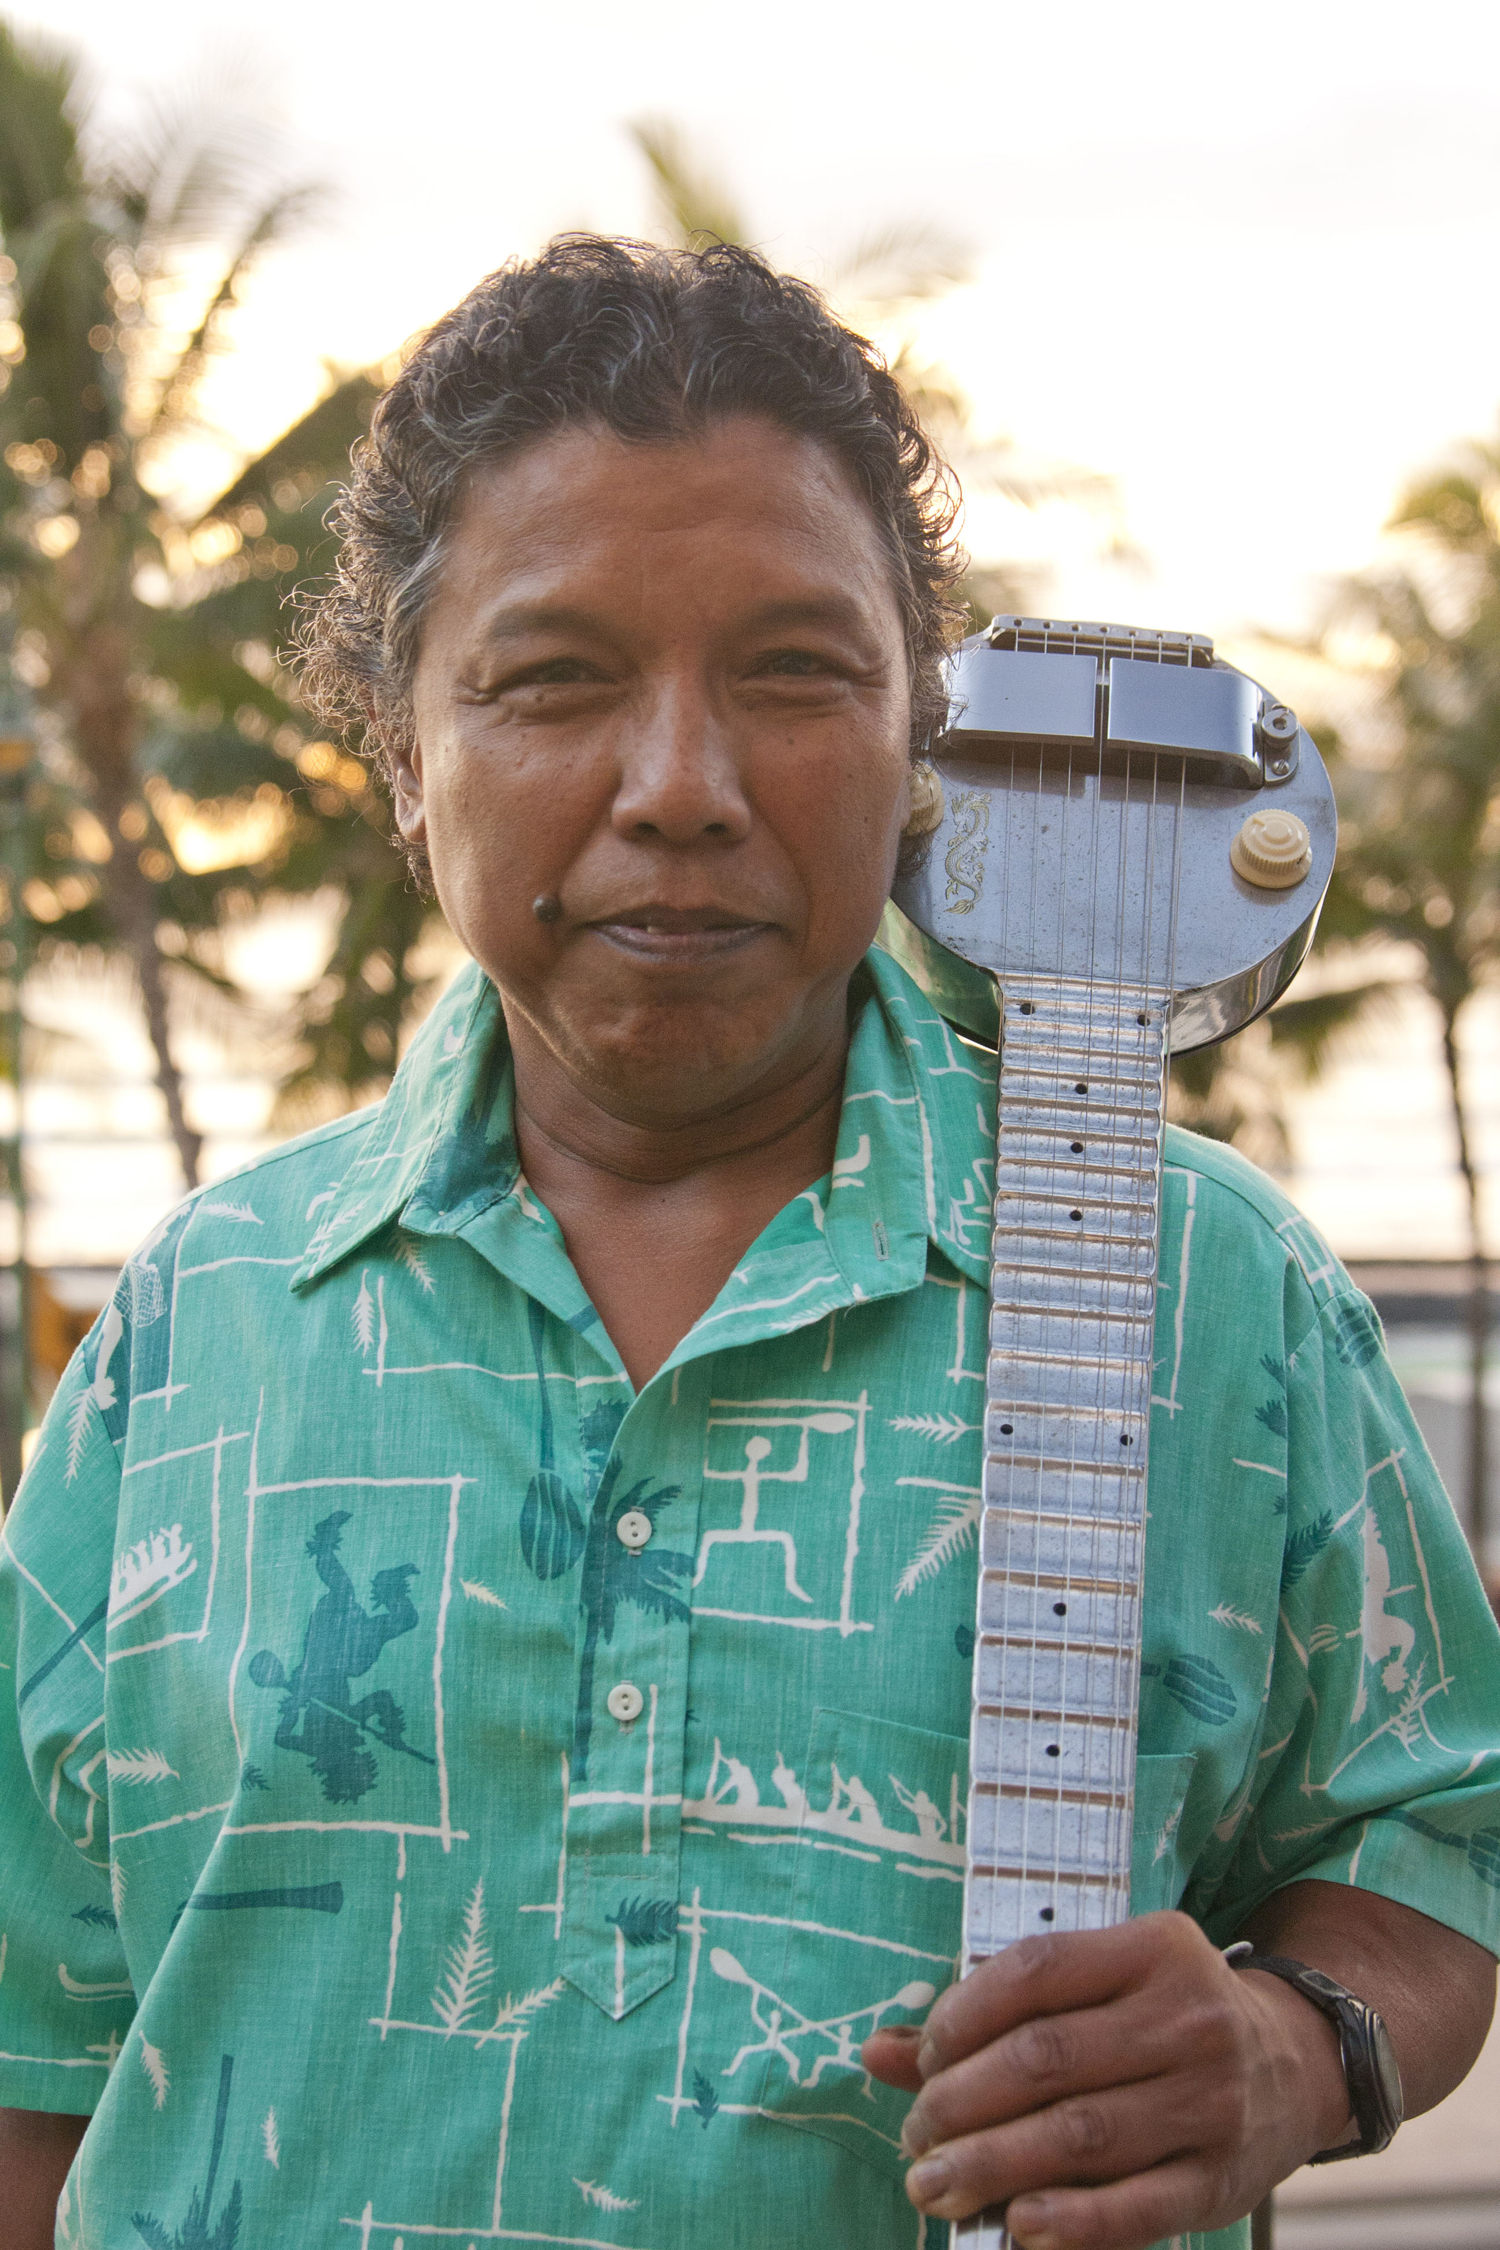 Steel Guitar Master Bobby Ingano will use the sight and sound technique to share his steel guitar artistry. Photo courtesy of WCC and Pomaika'i Loo.